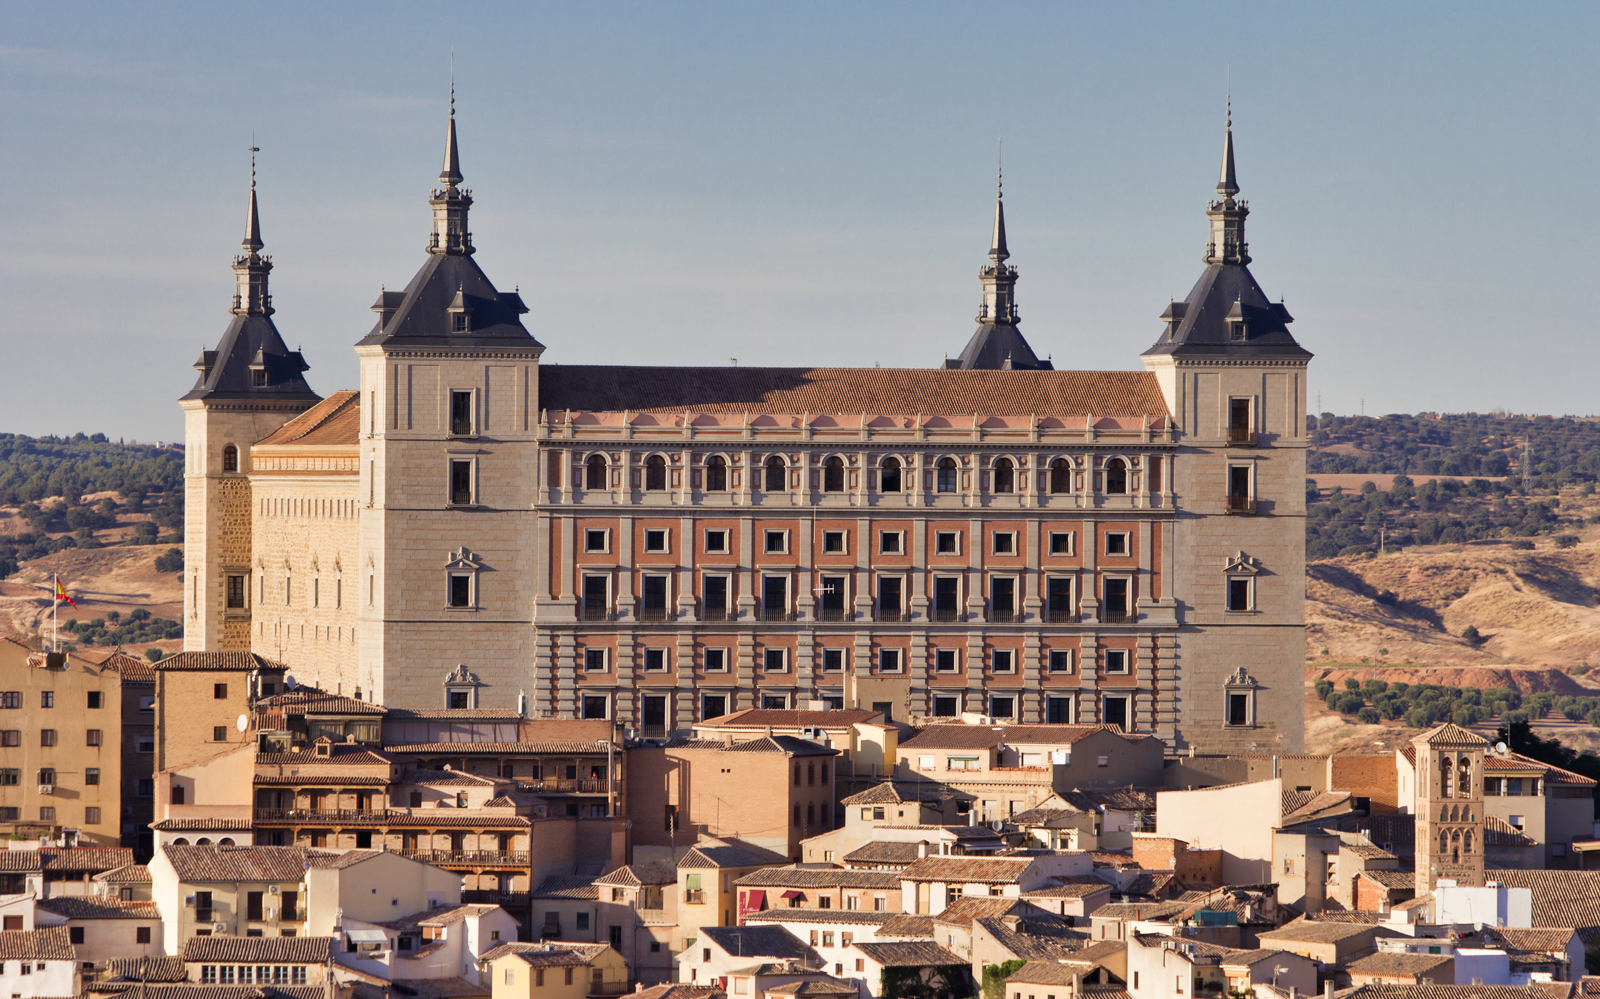 E1000e4e fdbb 407a 8c8e ac26d20a65a0 9402 madrid 2 days tour to toledo   segovia   royal palace 06